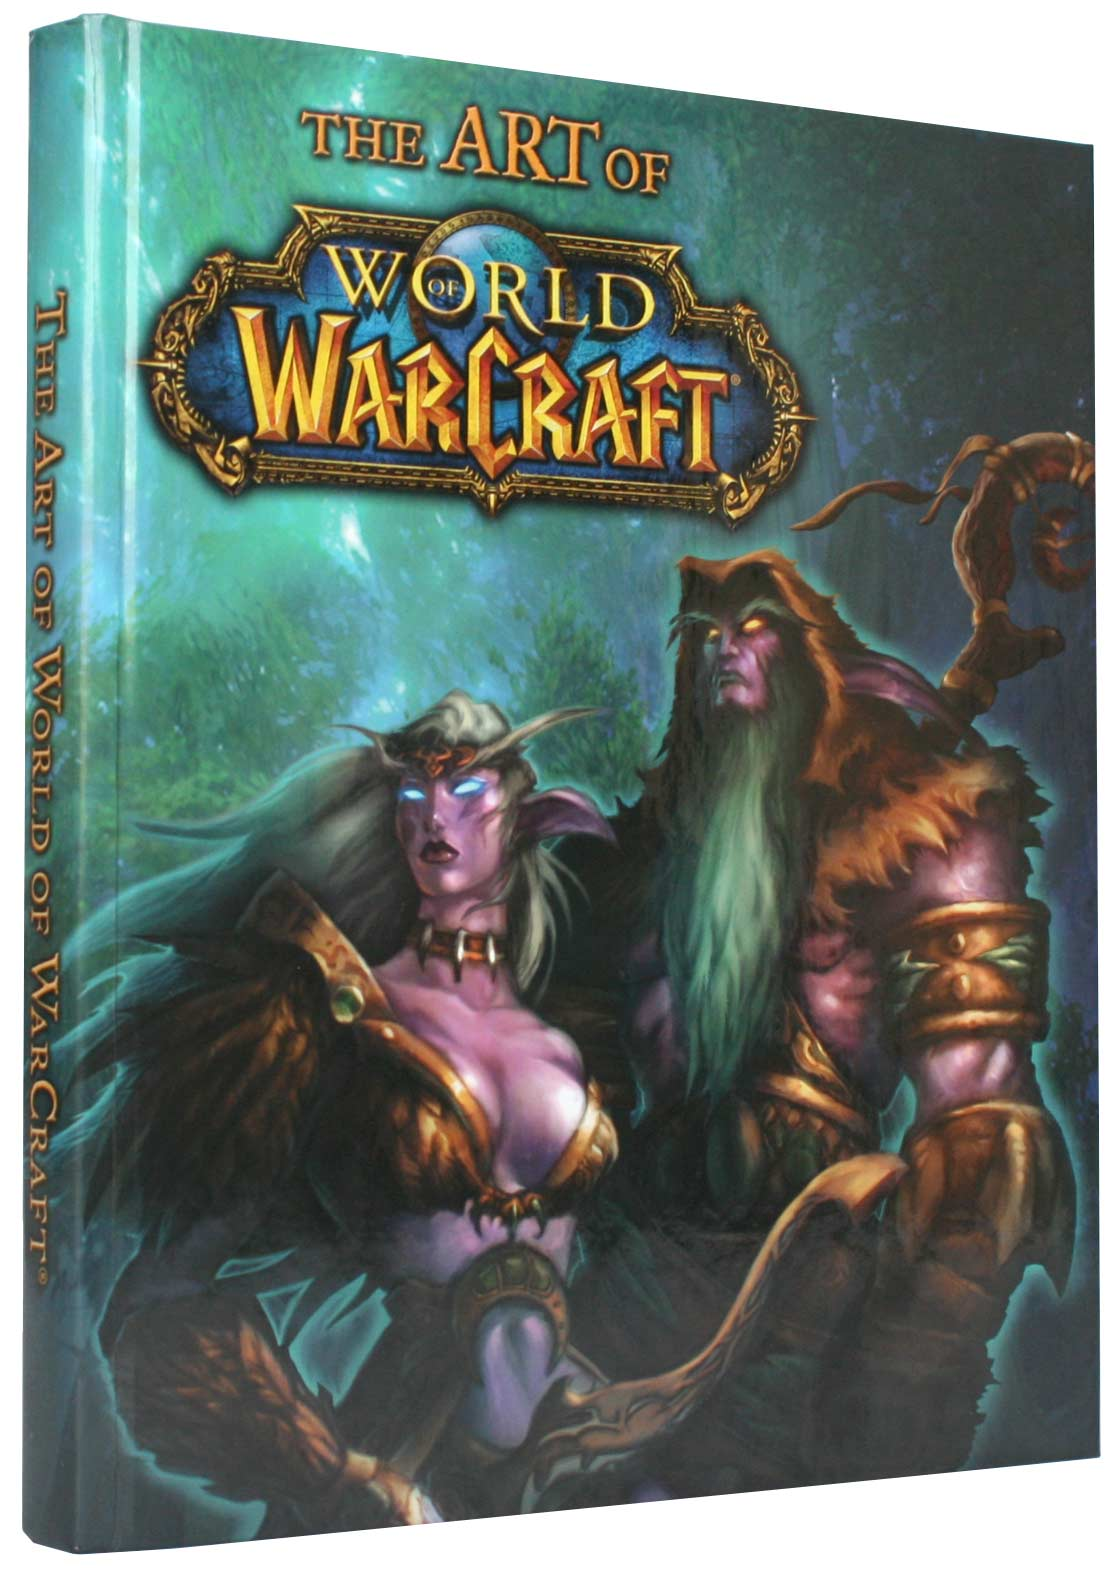 The Art of World of Warcraft (couverture de l'Art Book)